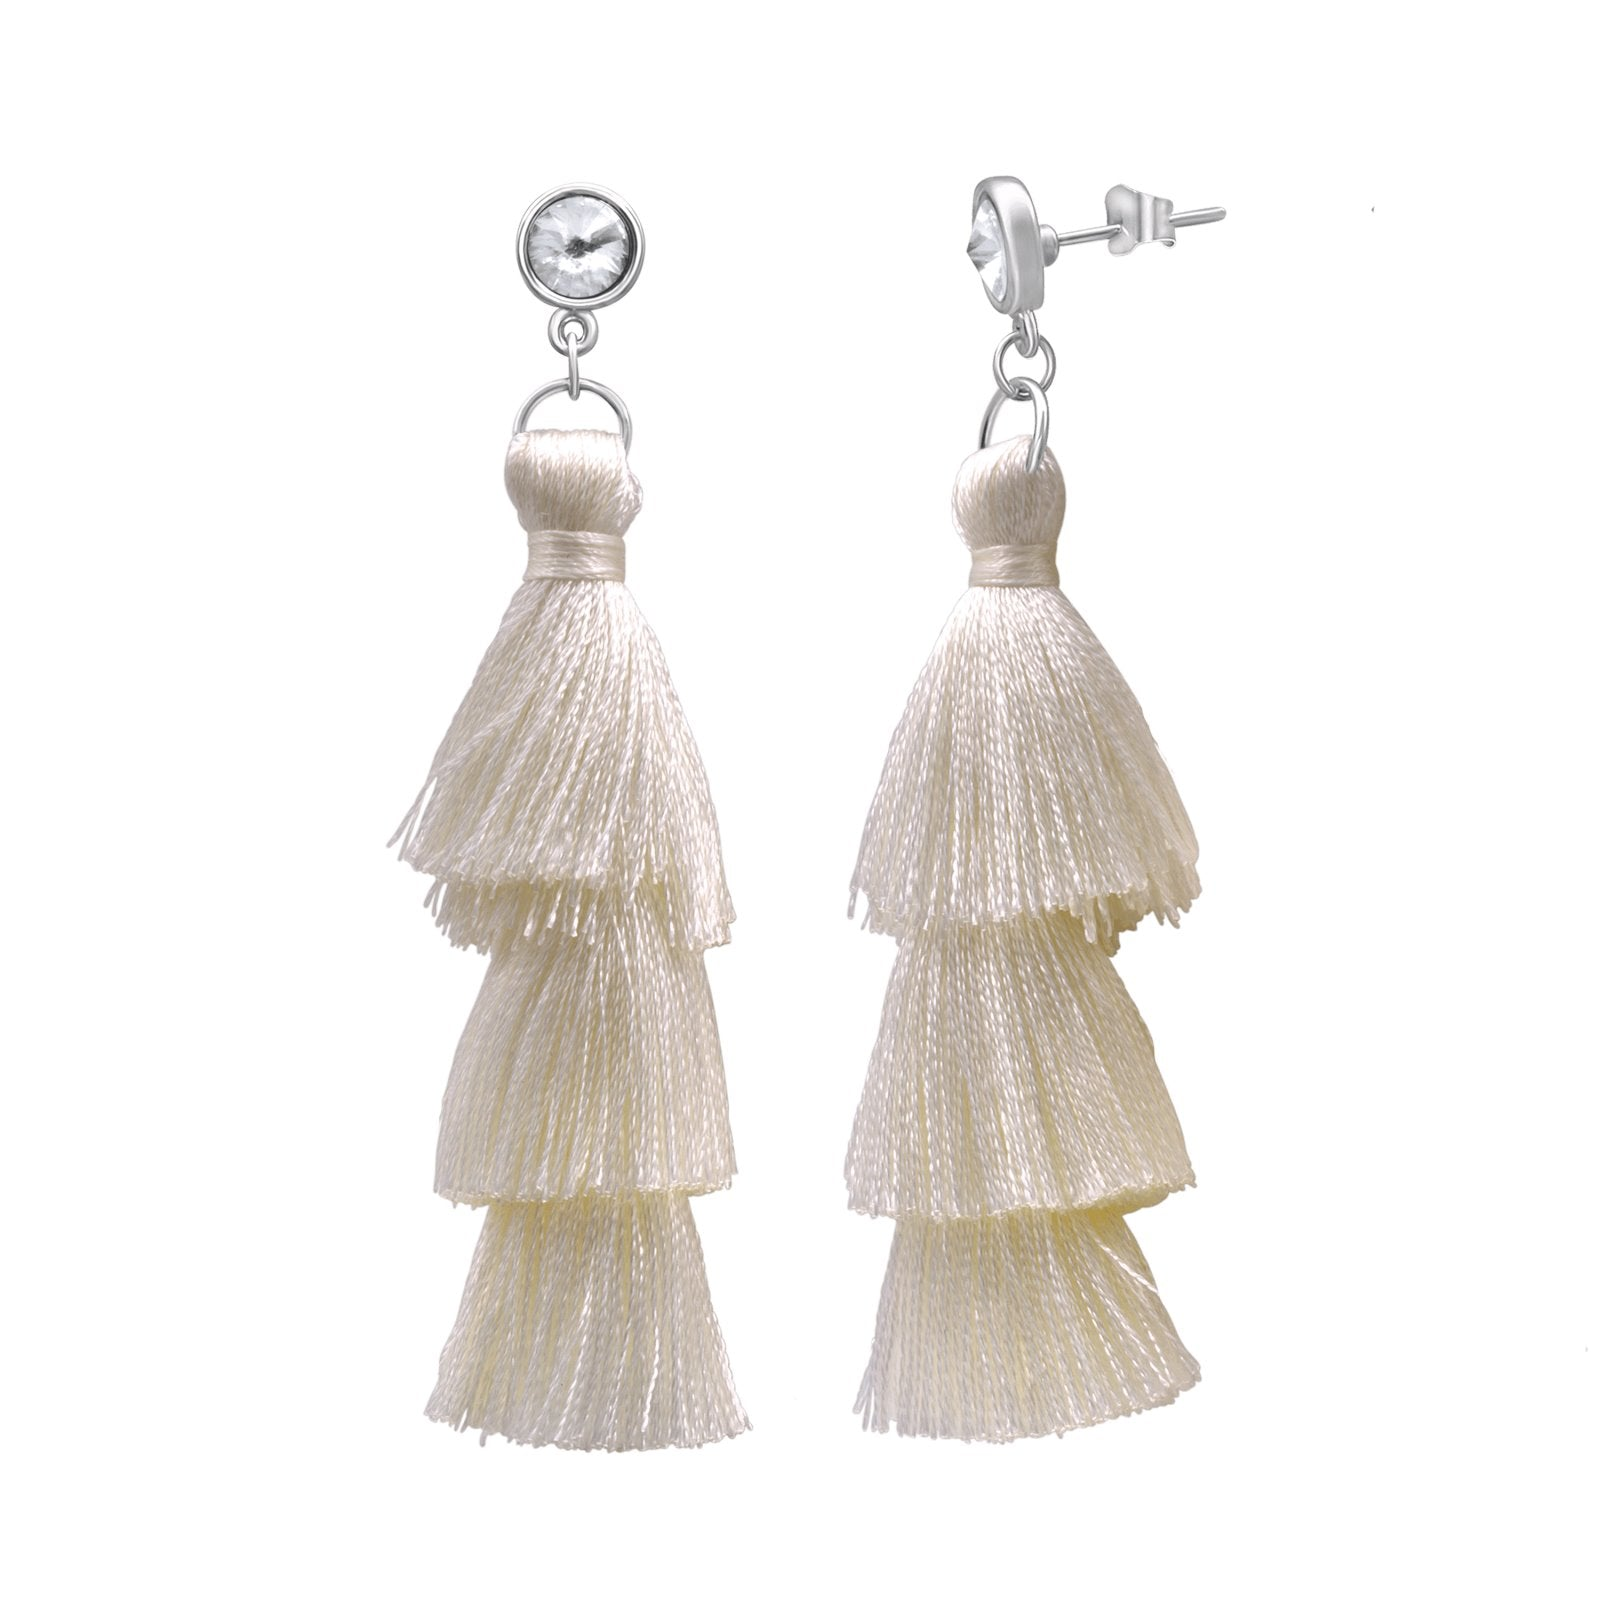 Tassel Drop Earrings forevercrystals White